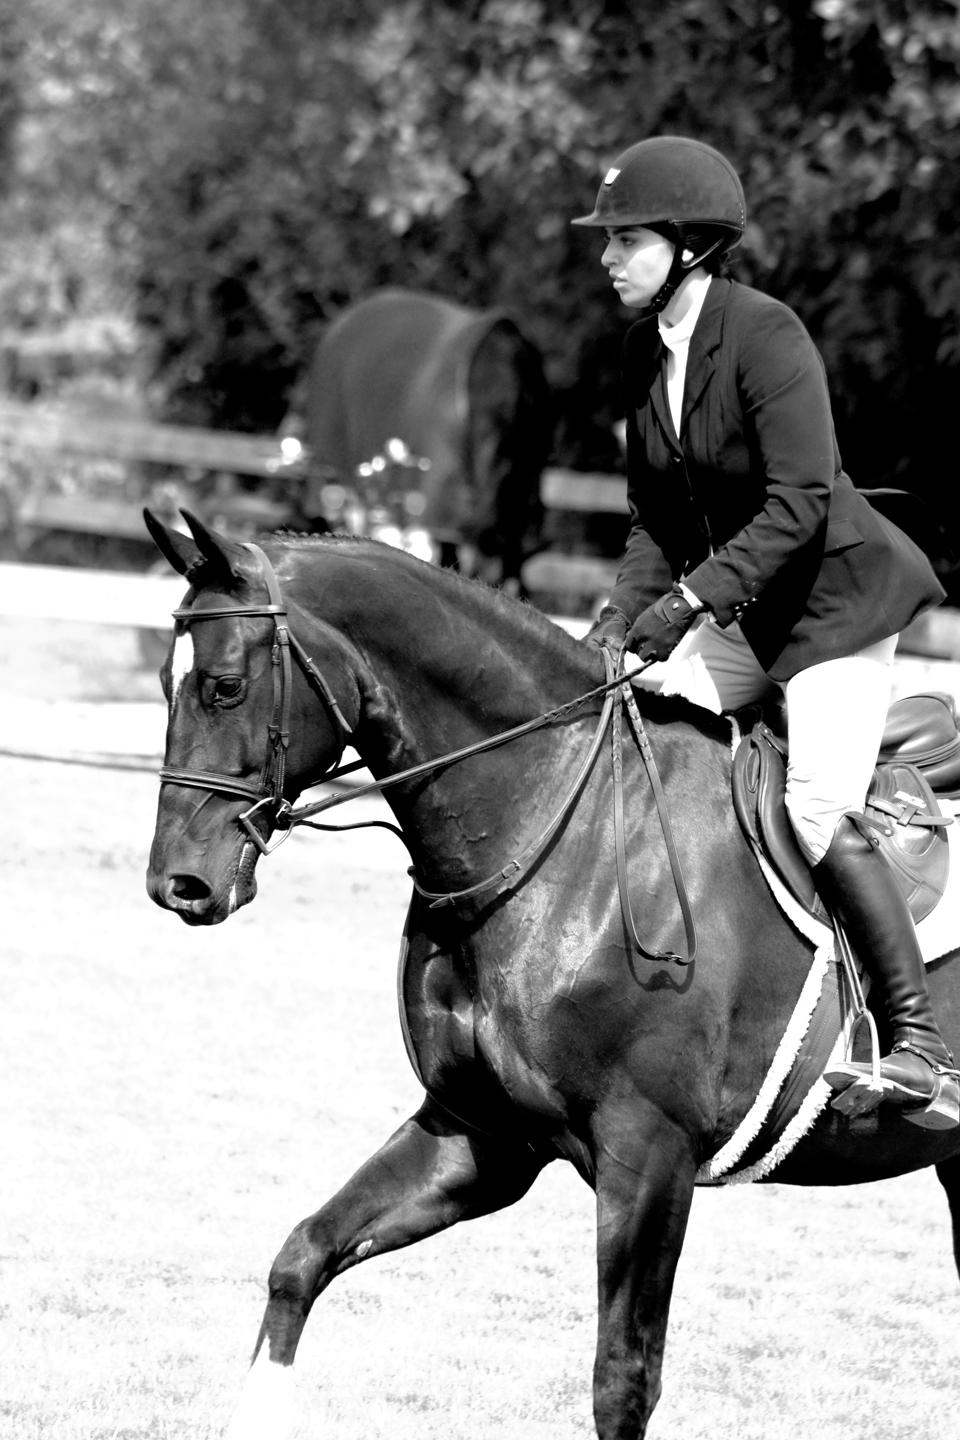 Elite Fashion Model and Social Media Influencer Billy Arora competing in an equestrian competition